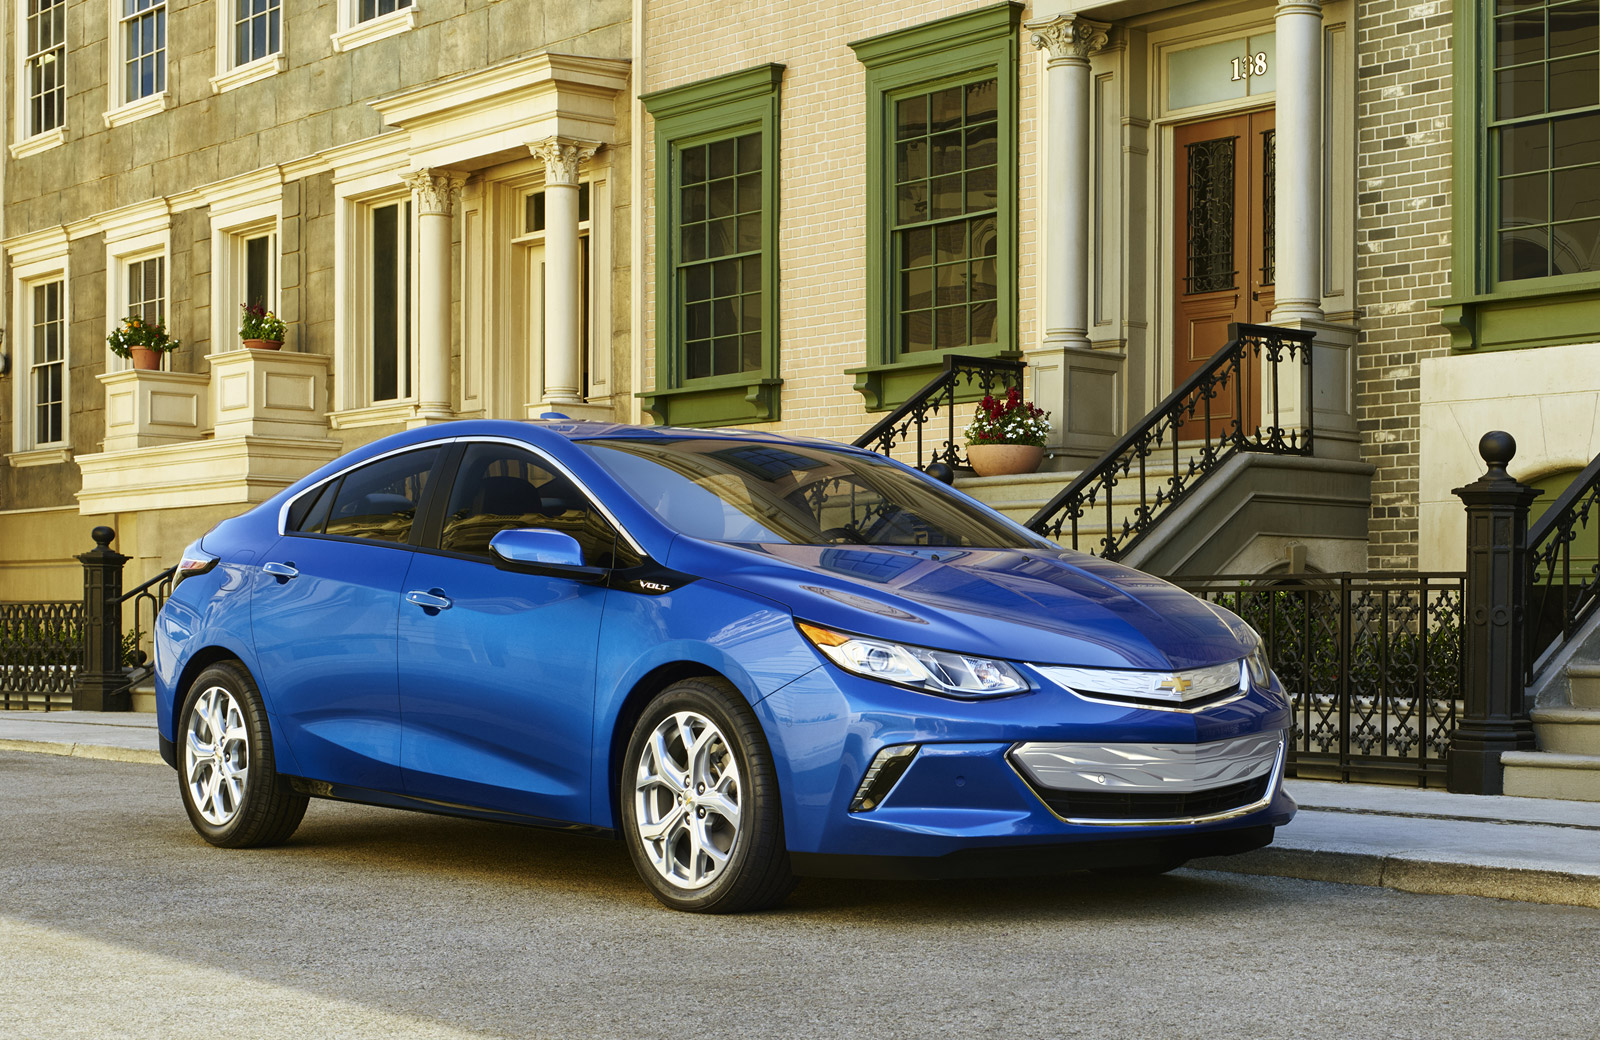 2016 Chevrolet Volt Priced From $33995, Or $1175 Lower Than 2015 Volt